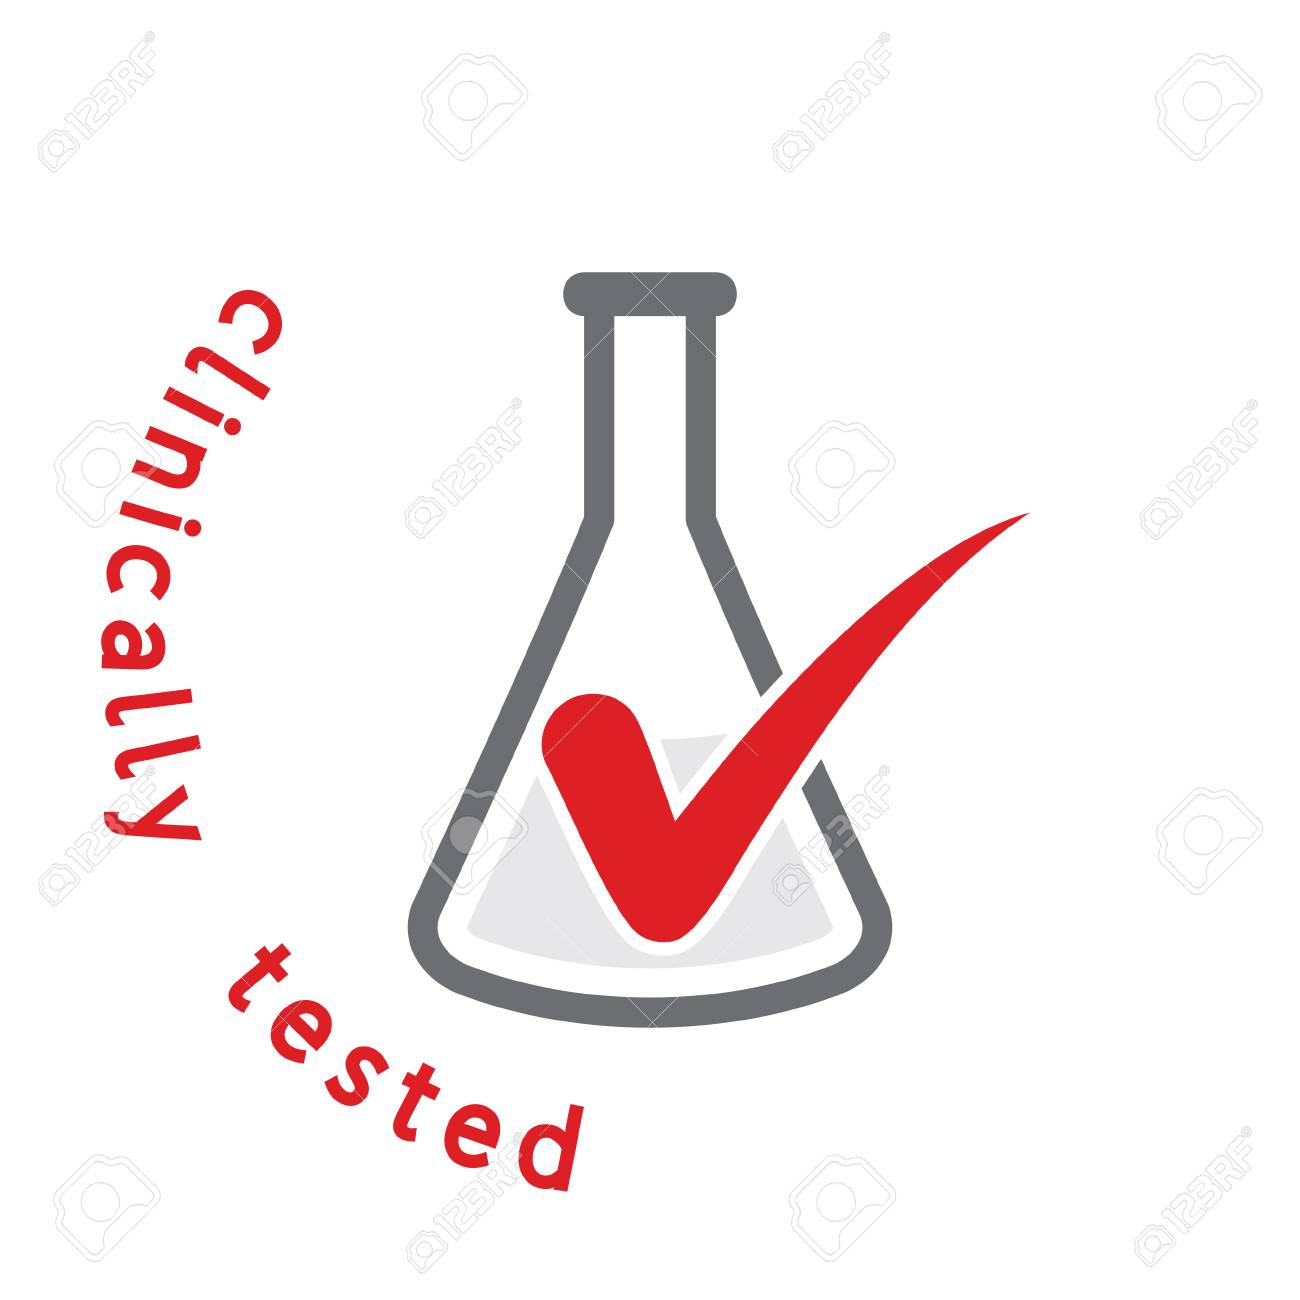 Image result for clinically tested